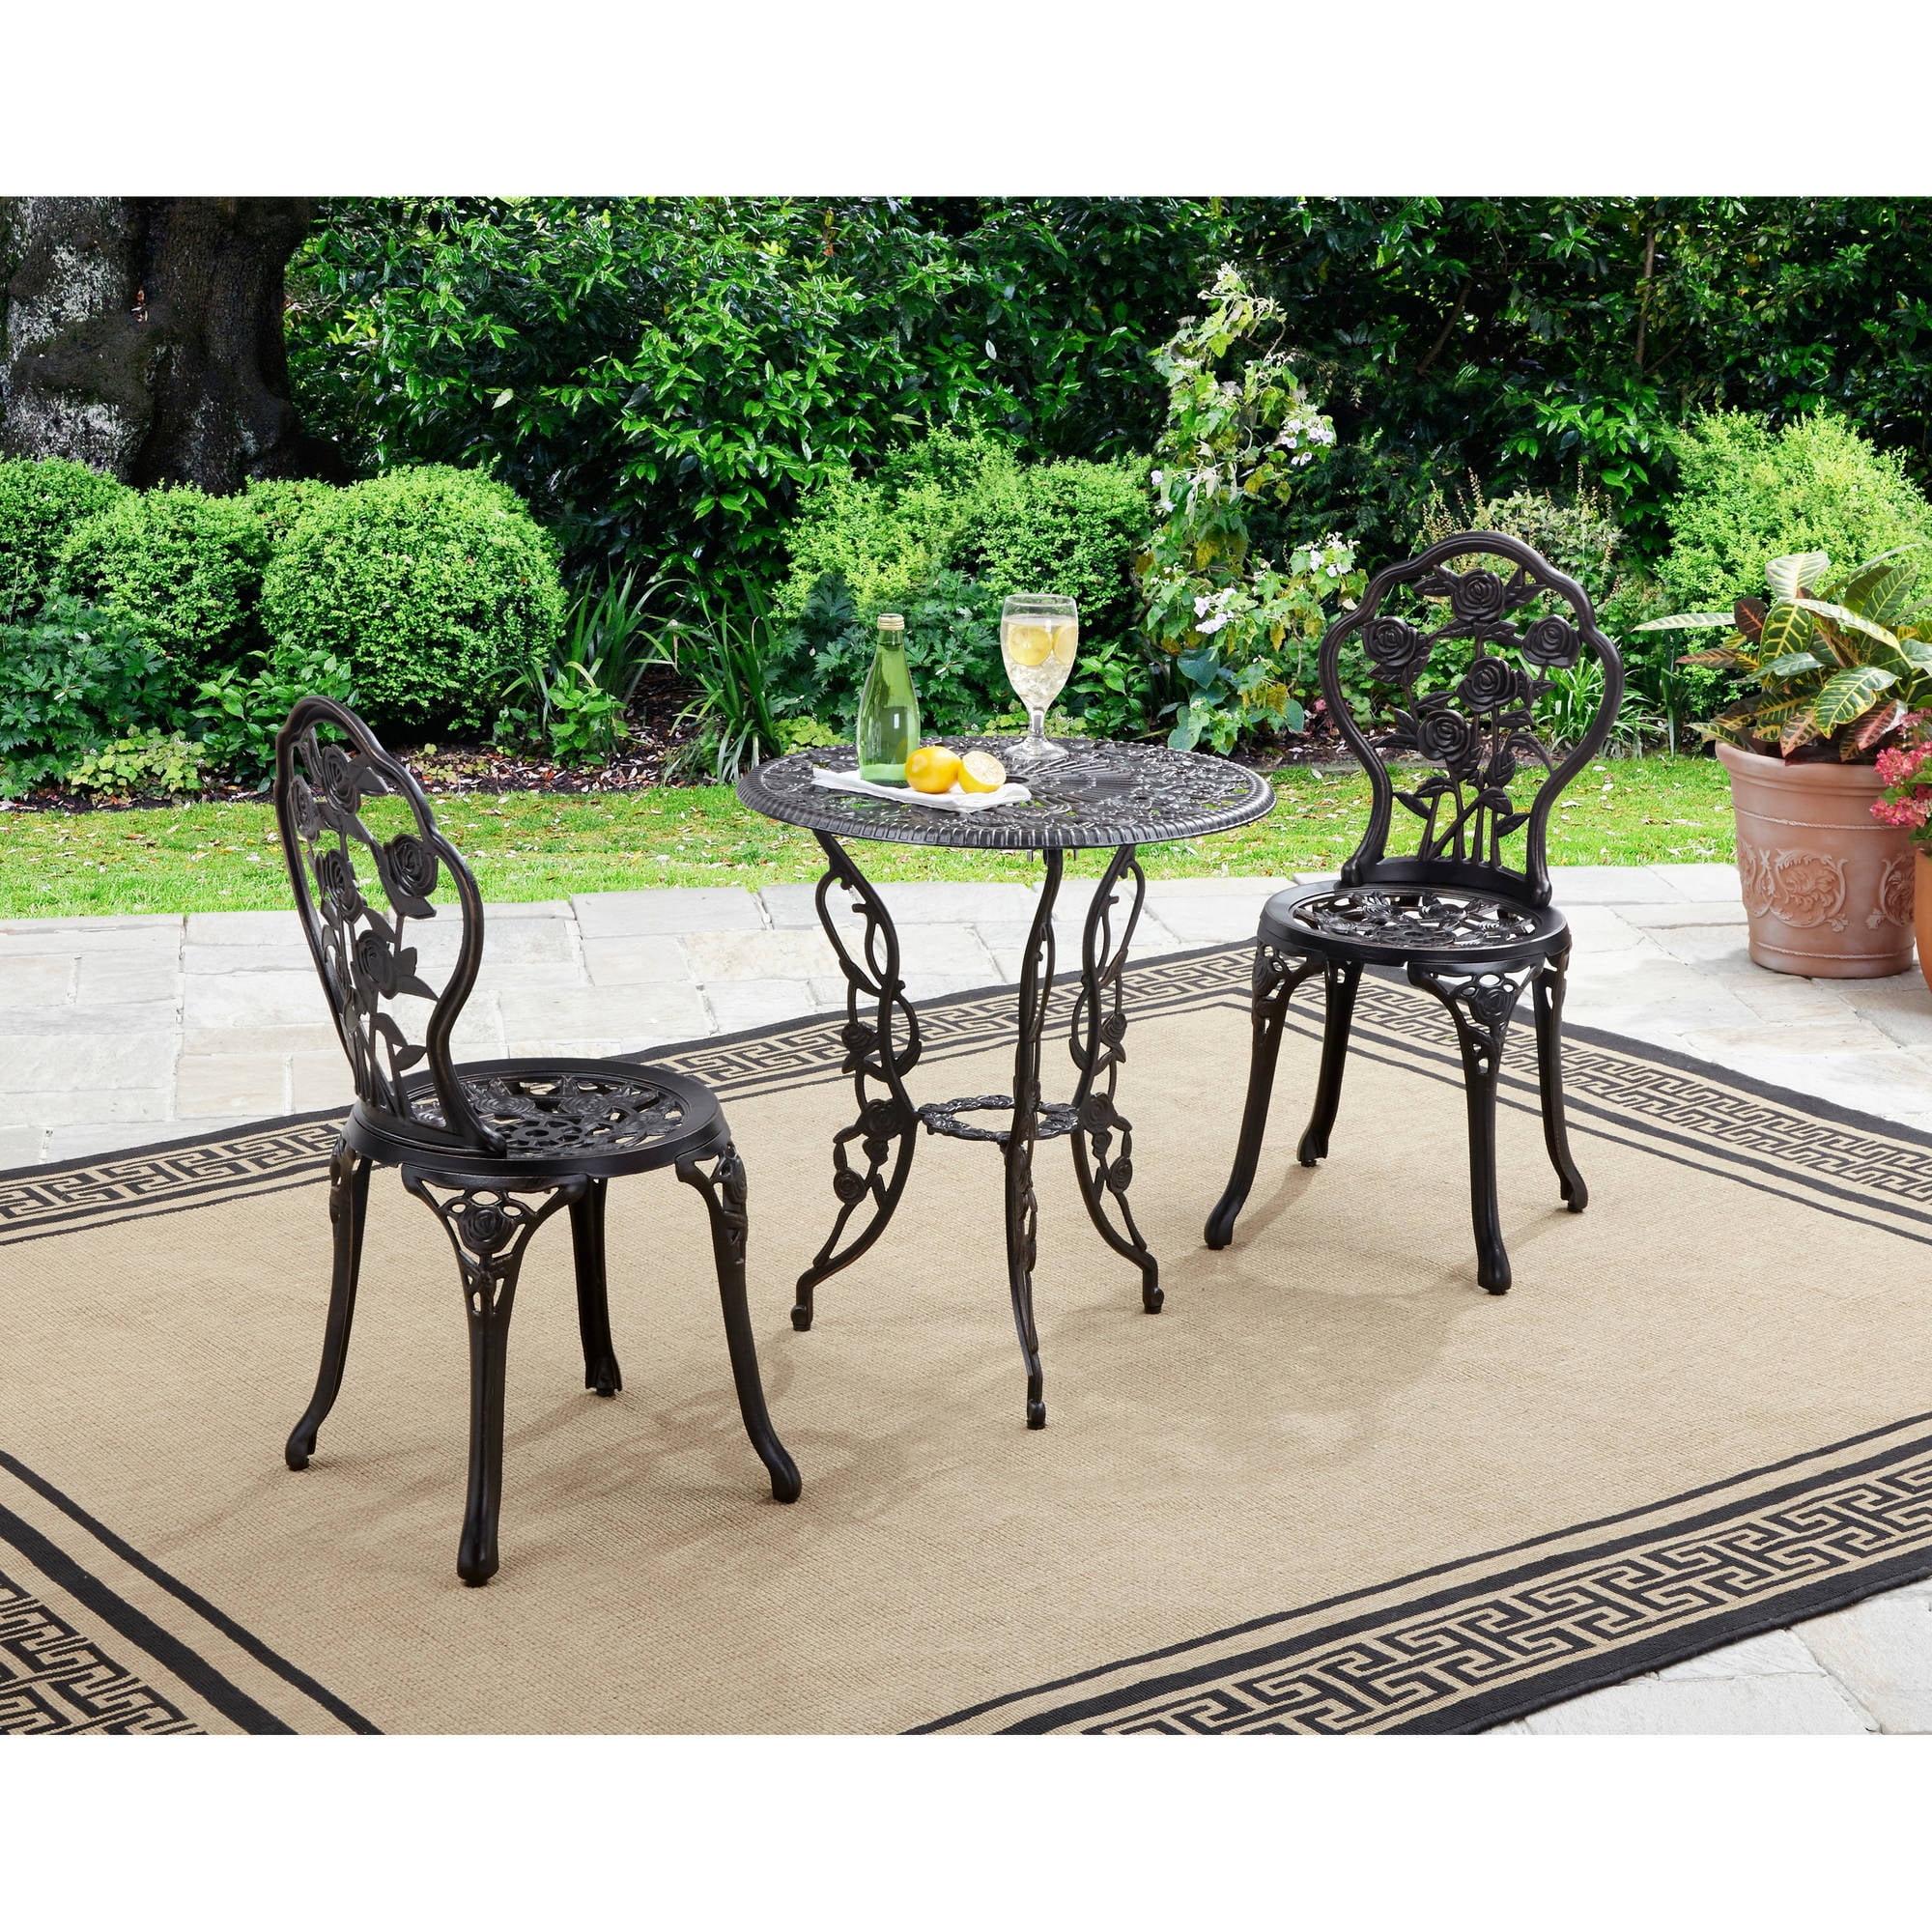 Round Patio Furniture Round Patio Tables Walmart House Architecture Design